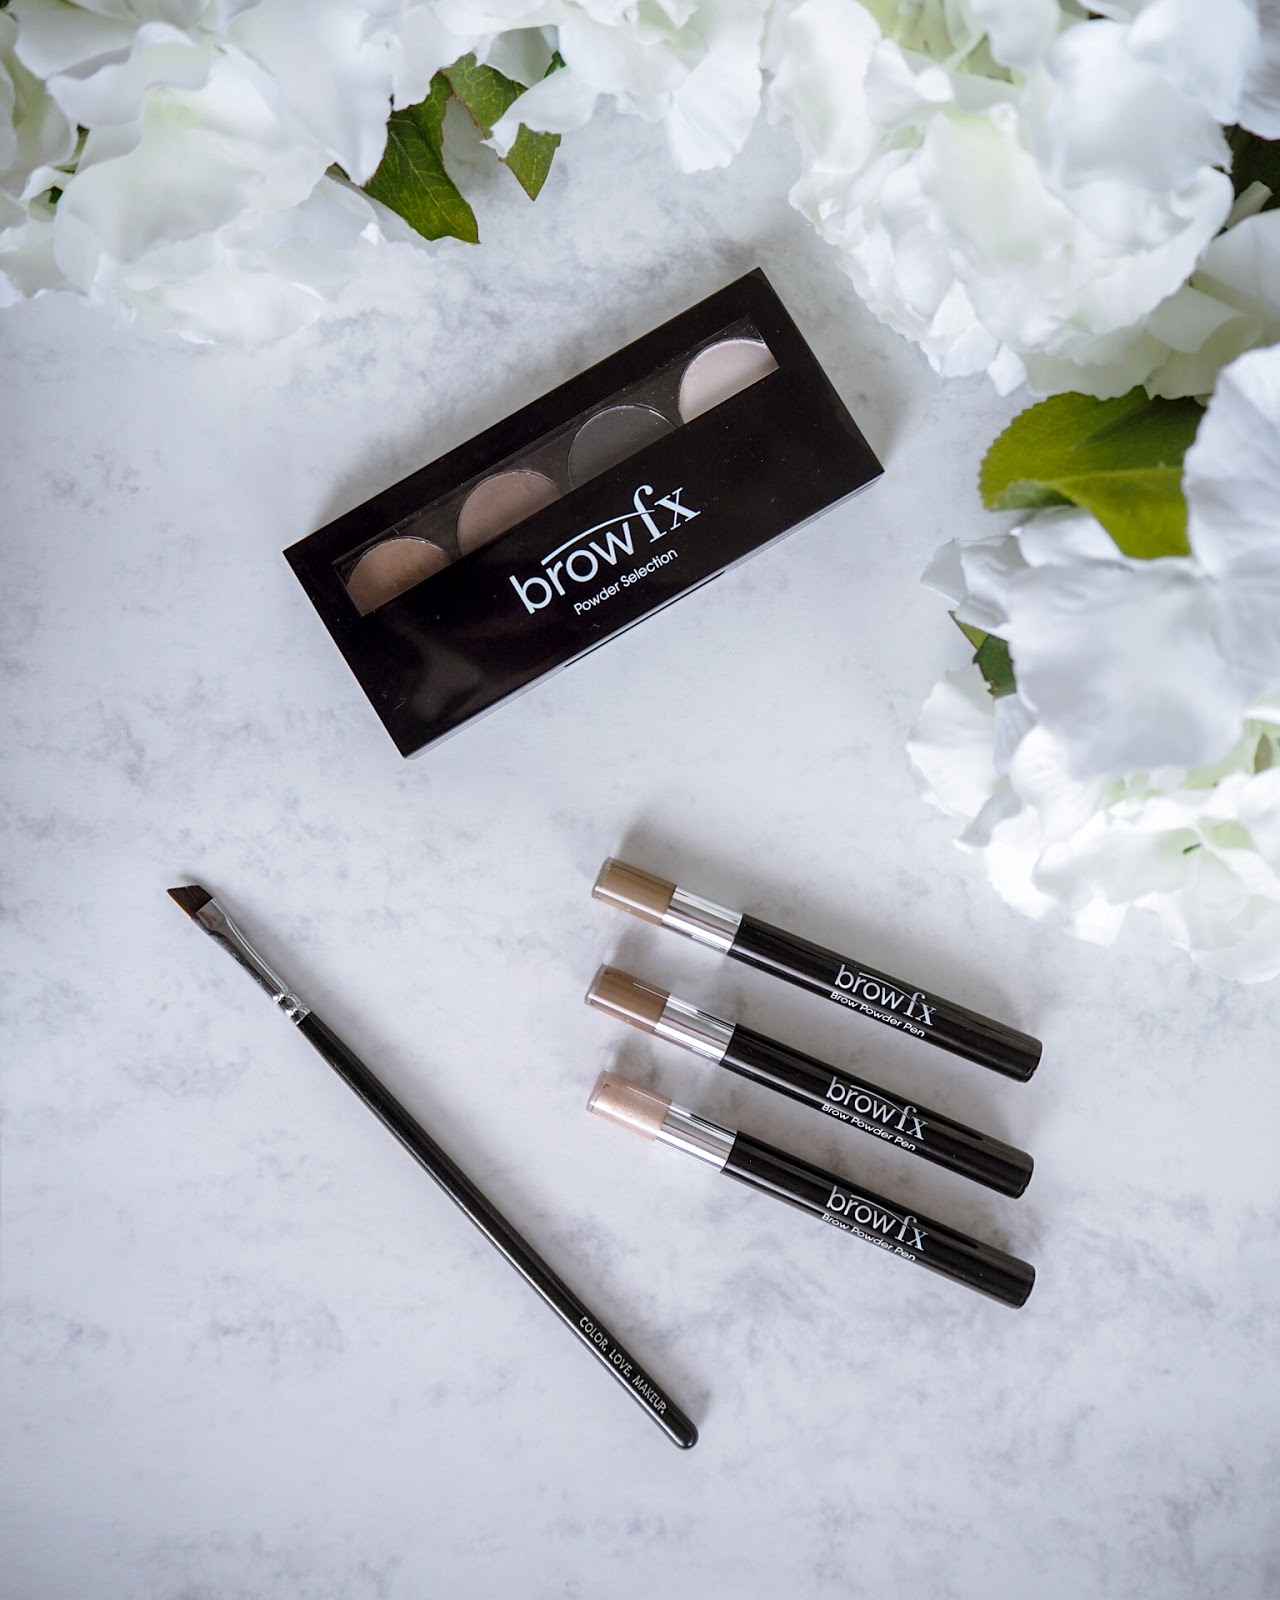 Brow FX Products